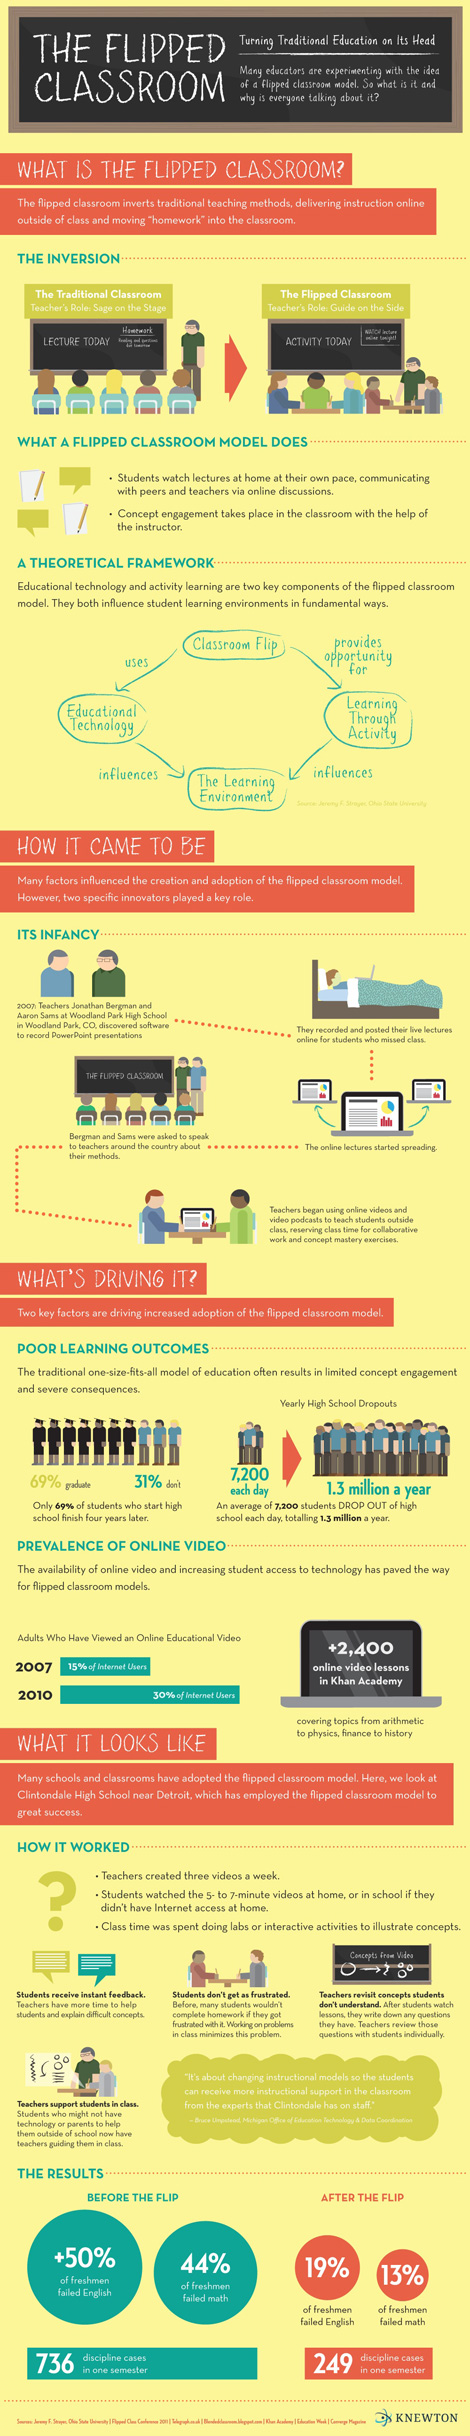 The Flipped Classroom - Infographic from Knewton